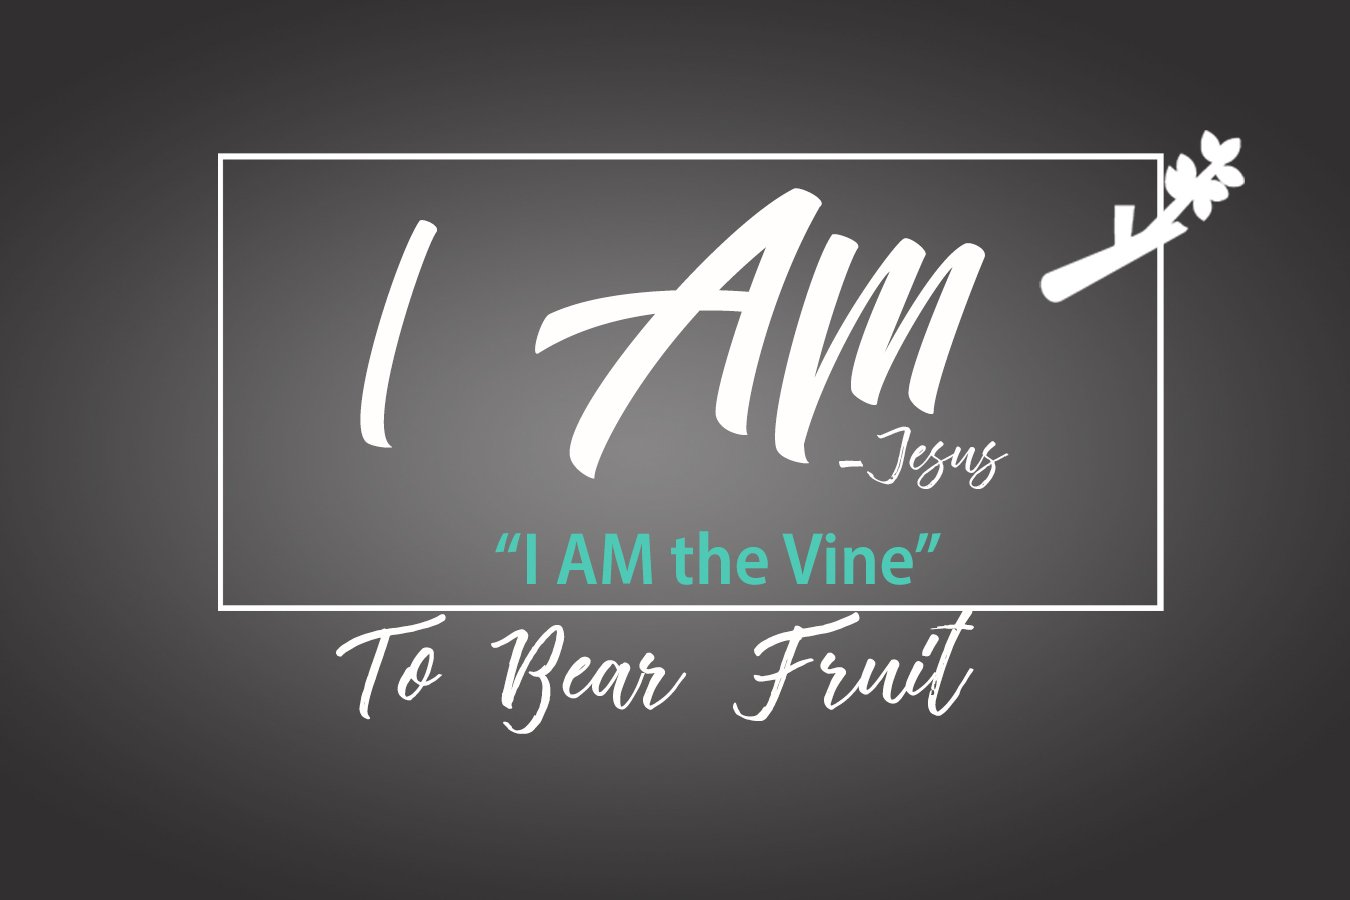 To Bear Fruit